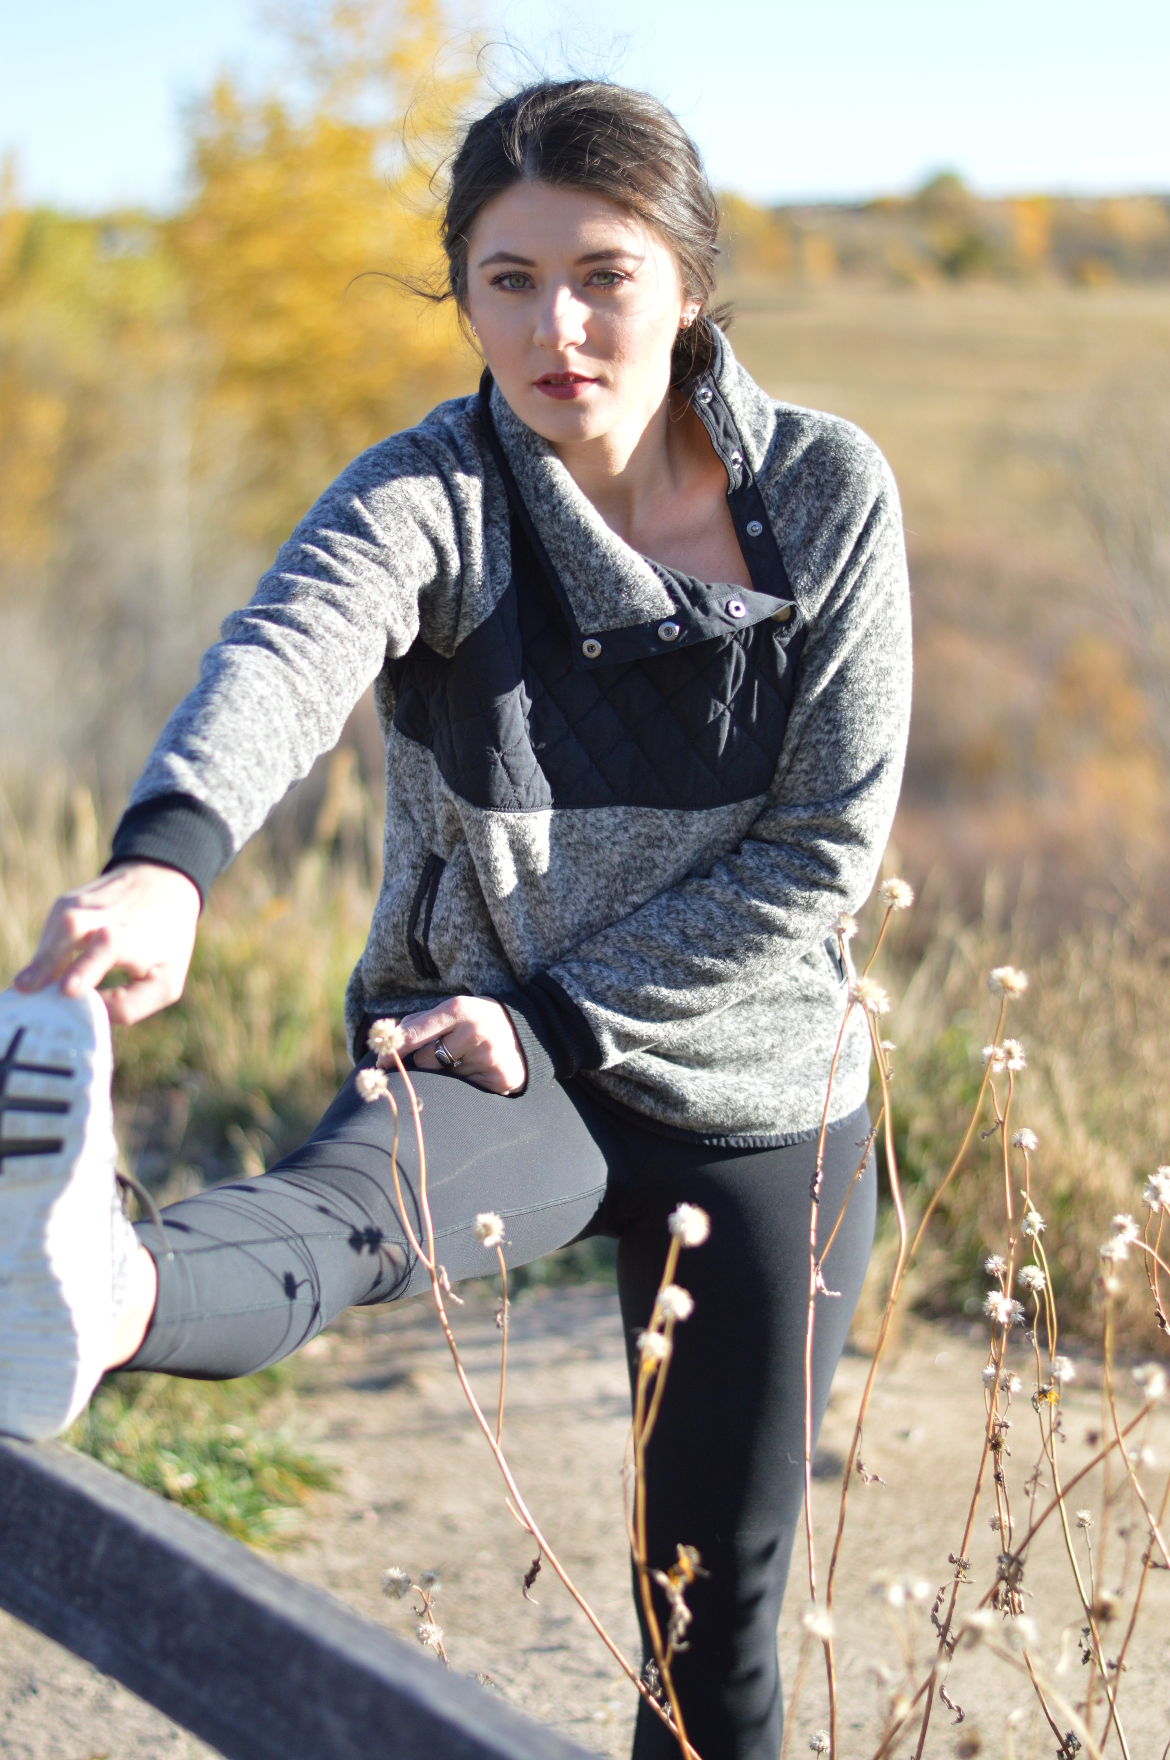 MY FAVORITE WORKOUT ROUTINE by Fashion in Flight abercrombie and fitch favorite sweatshirt nike black leggings nike flyknit sneakers outside colorado springs colorado denver blogger blog ashleigh jean lopes fashion beauty lifestyle blog